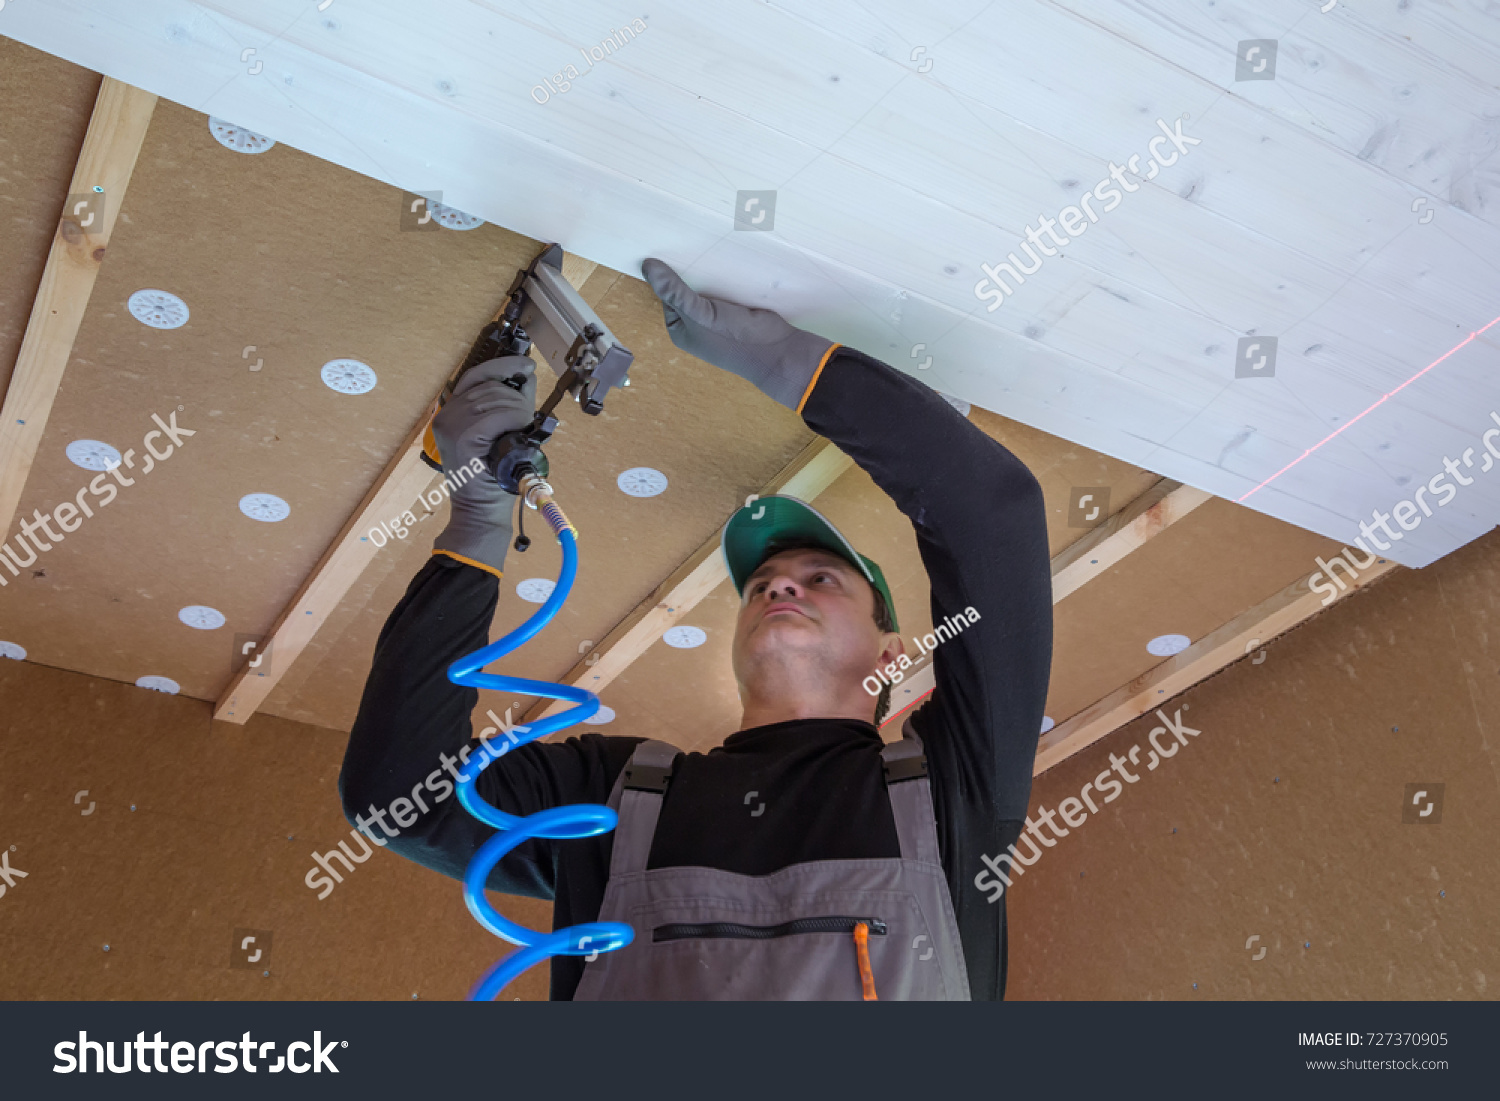 stock-photo-the-worker-produces-finishing-works-of-the-ceiling-with-a-white-wooden-board-construction-worker-727370905